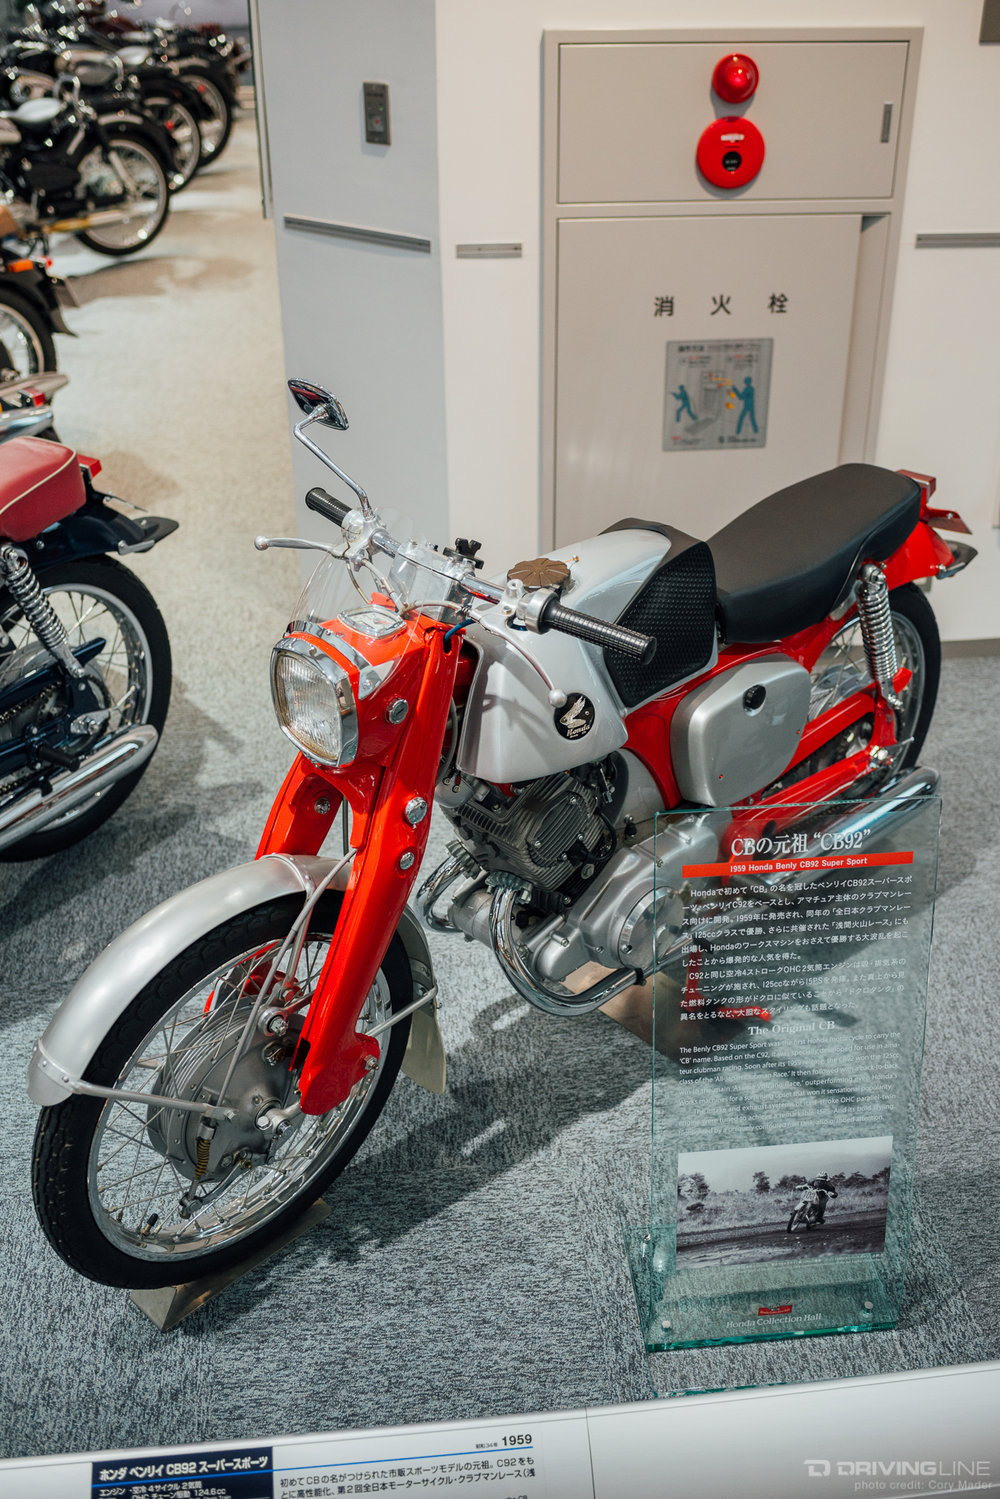 Honda-Collection-Hall-2016-13.jpg